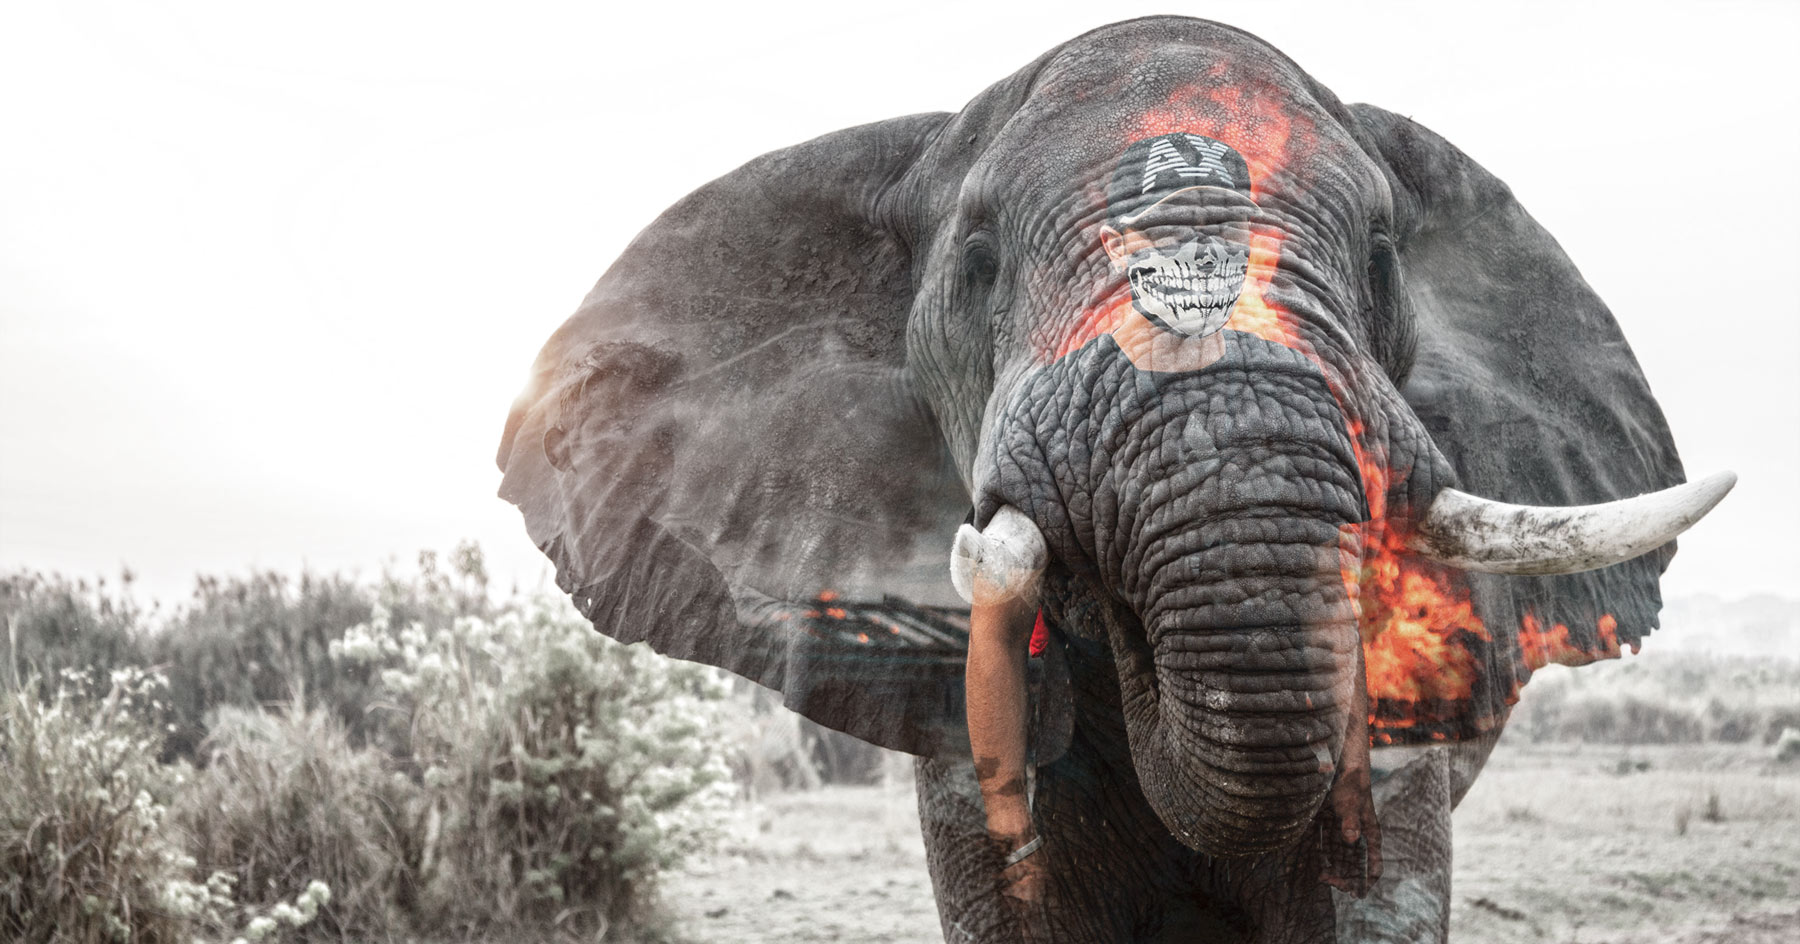 Elephants and Young Men: Toxic Masculinity in the Animal Kingdom?